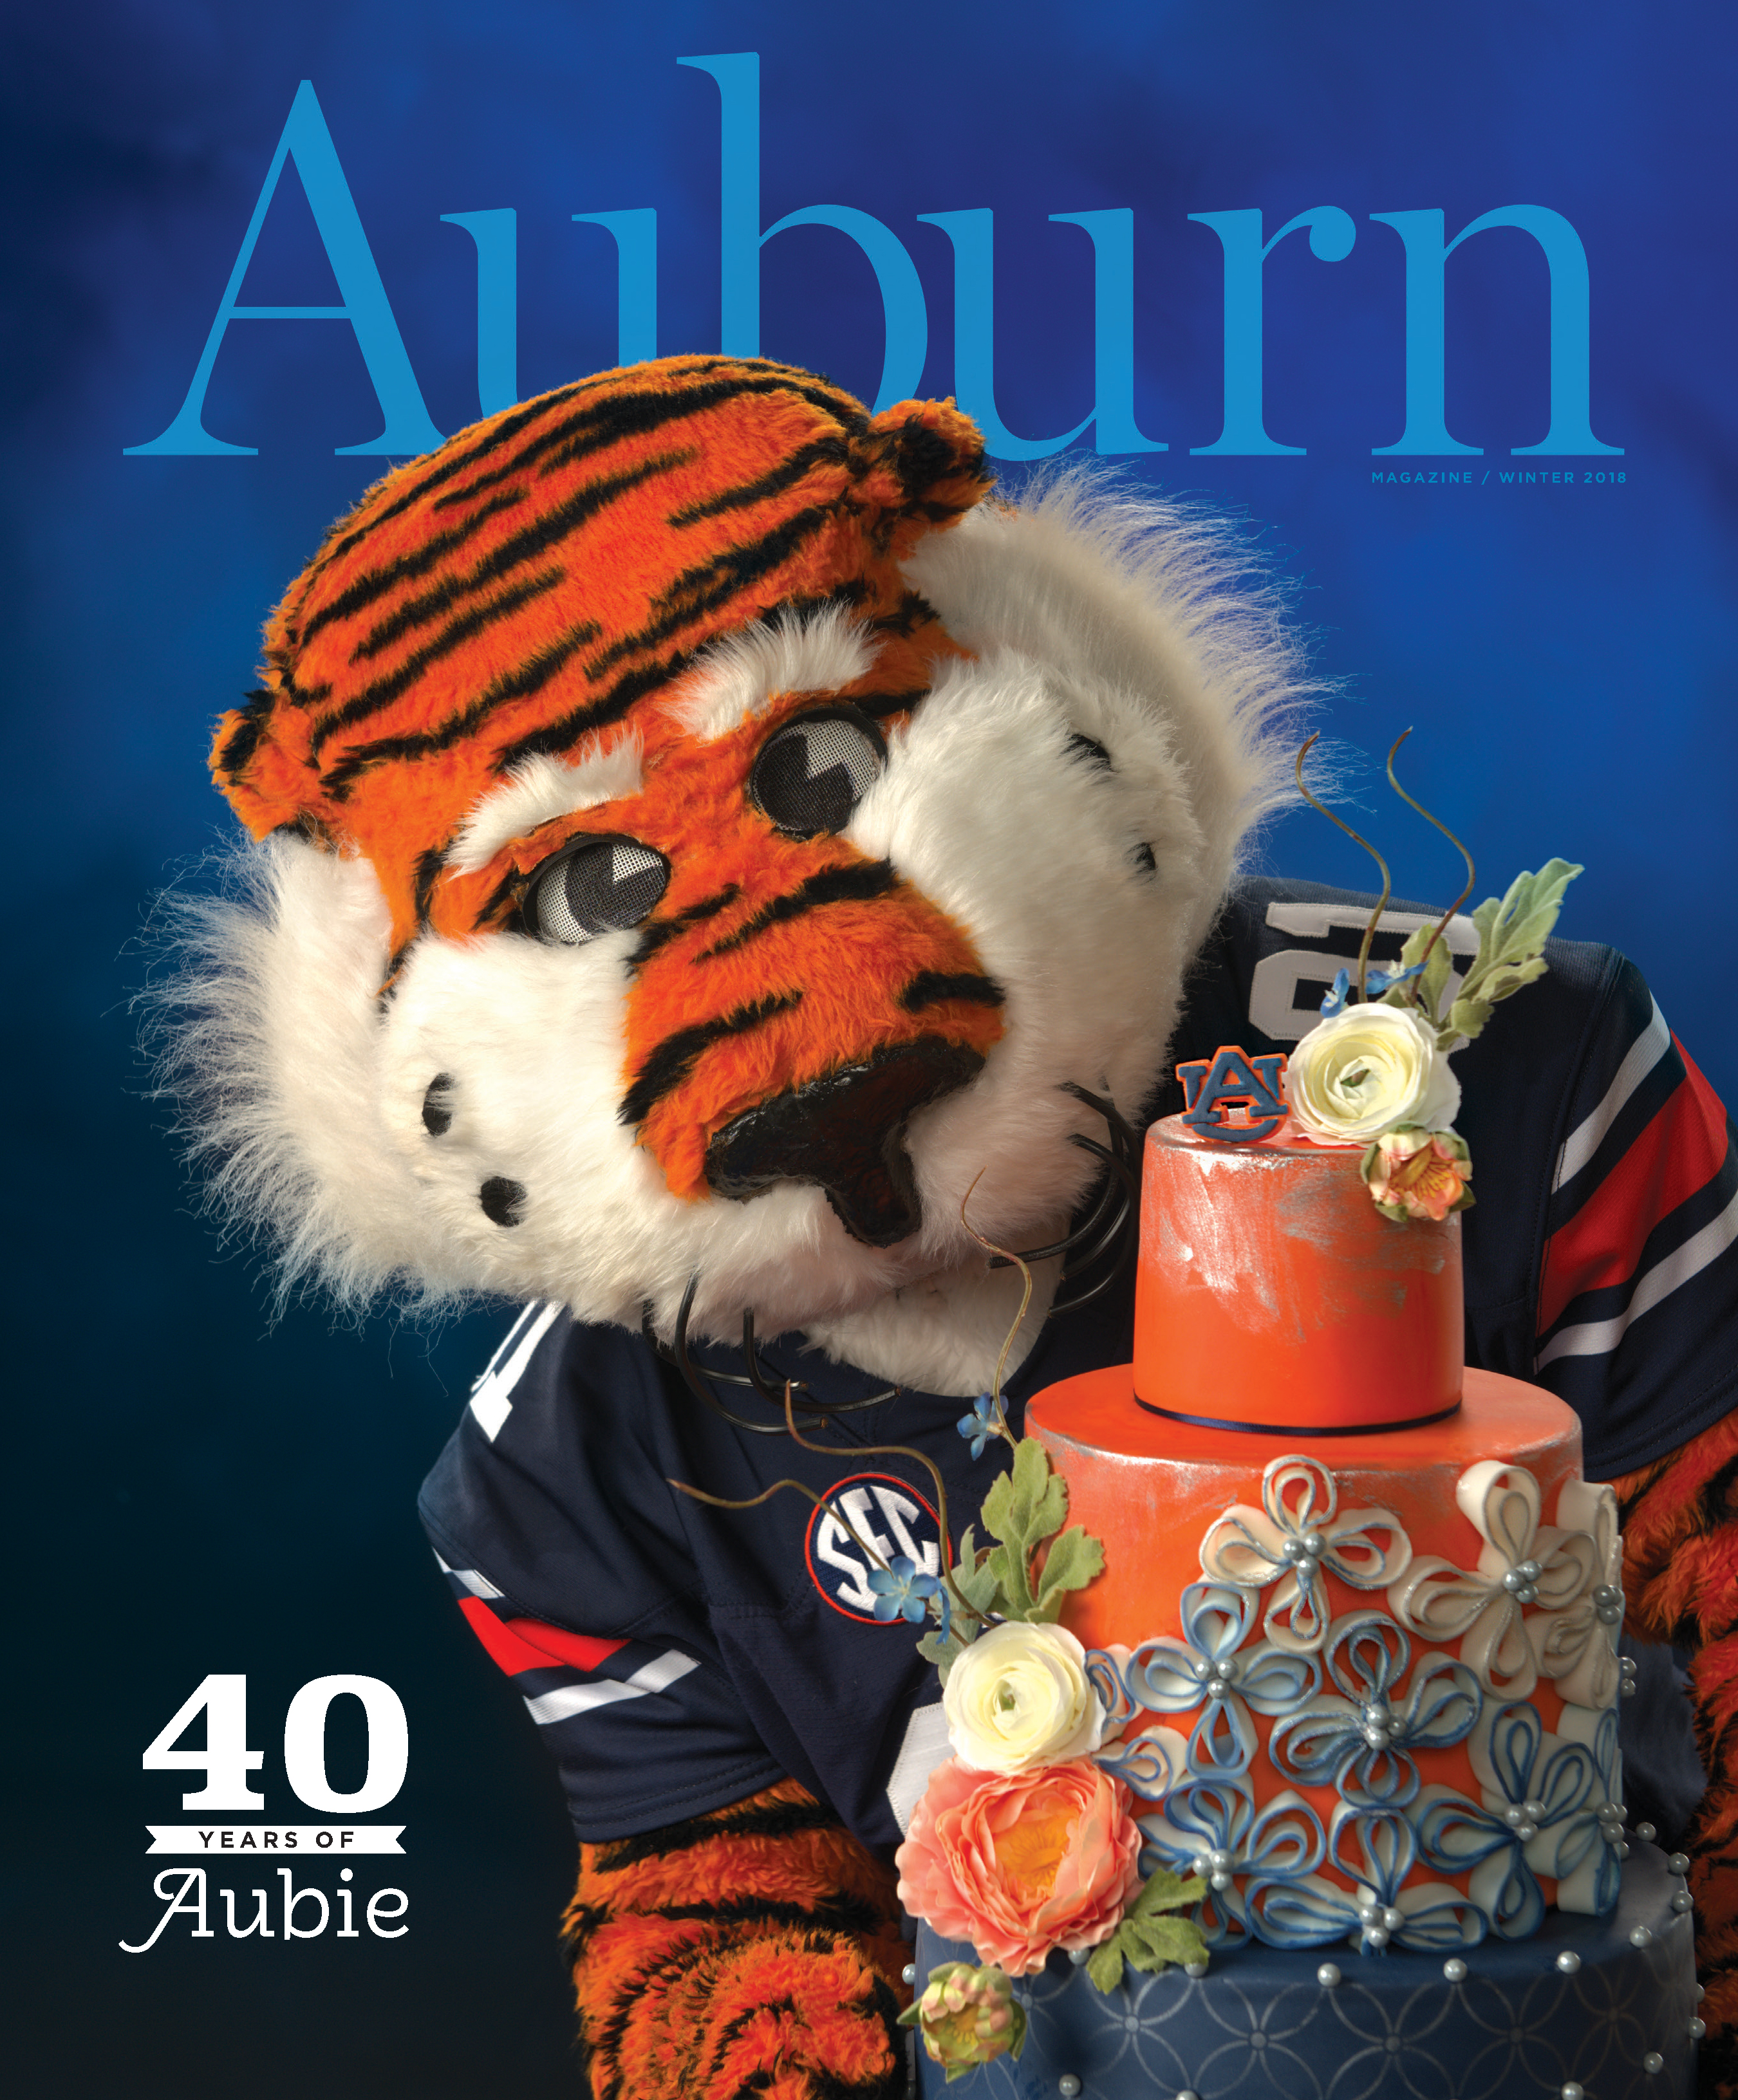 Auburn Magazine Winter 2018 40 Years of Aubie; Aubie holding a cake